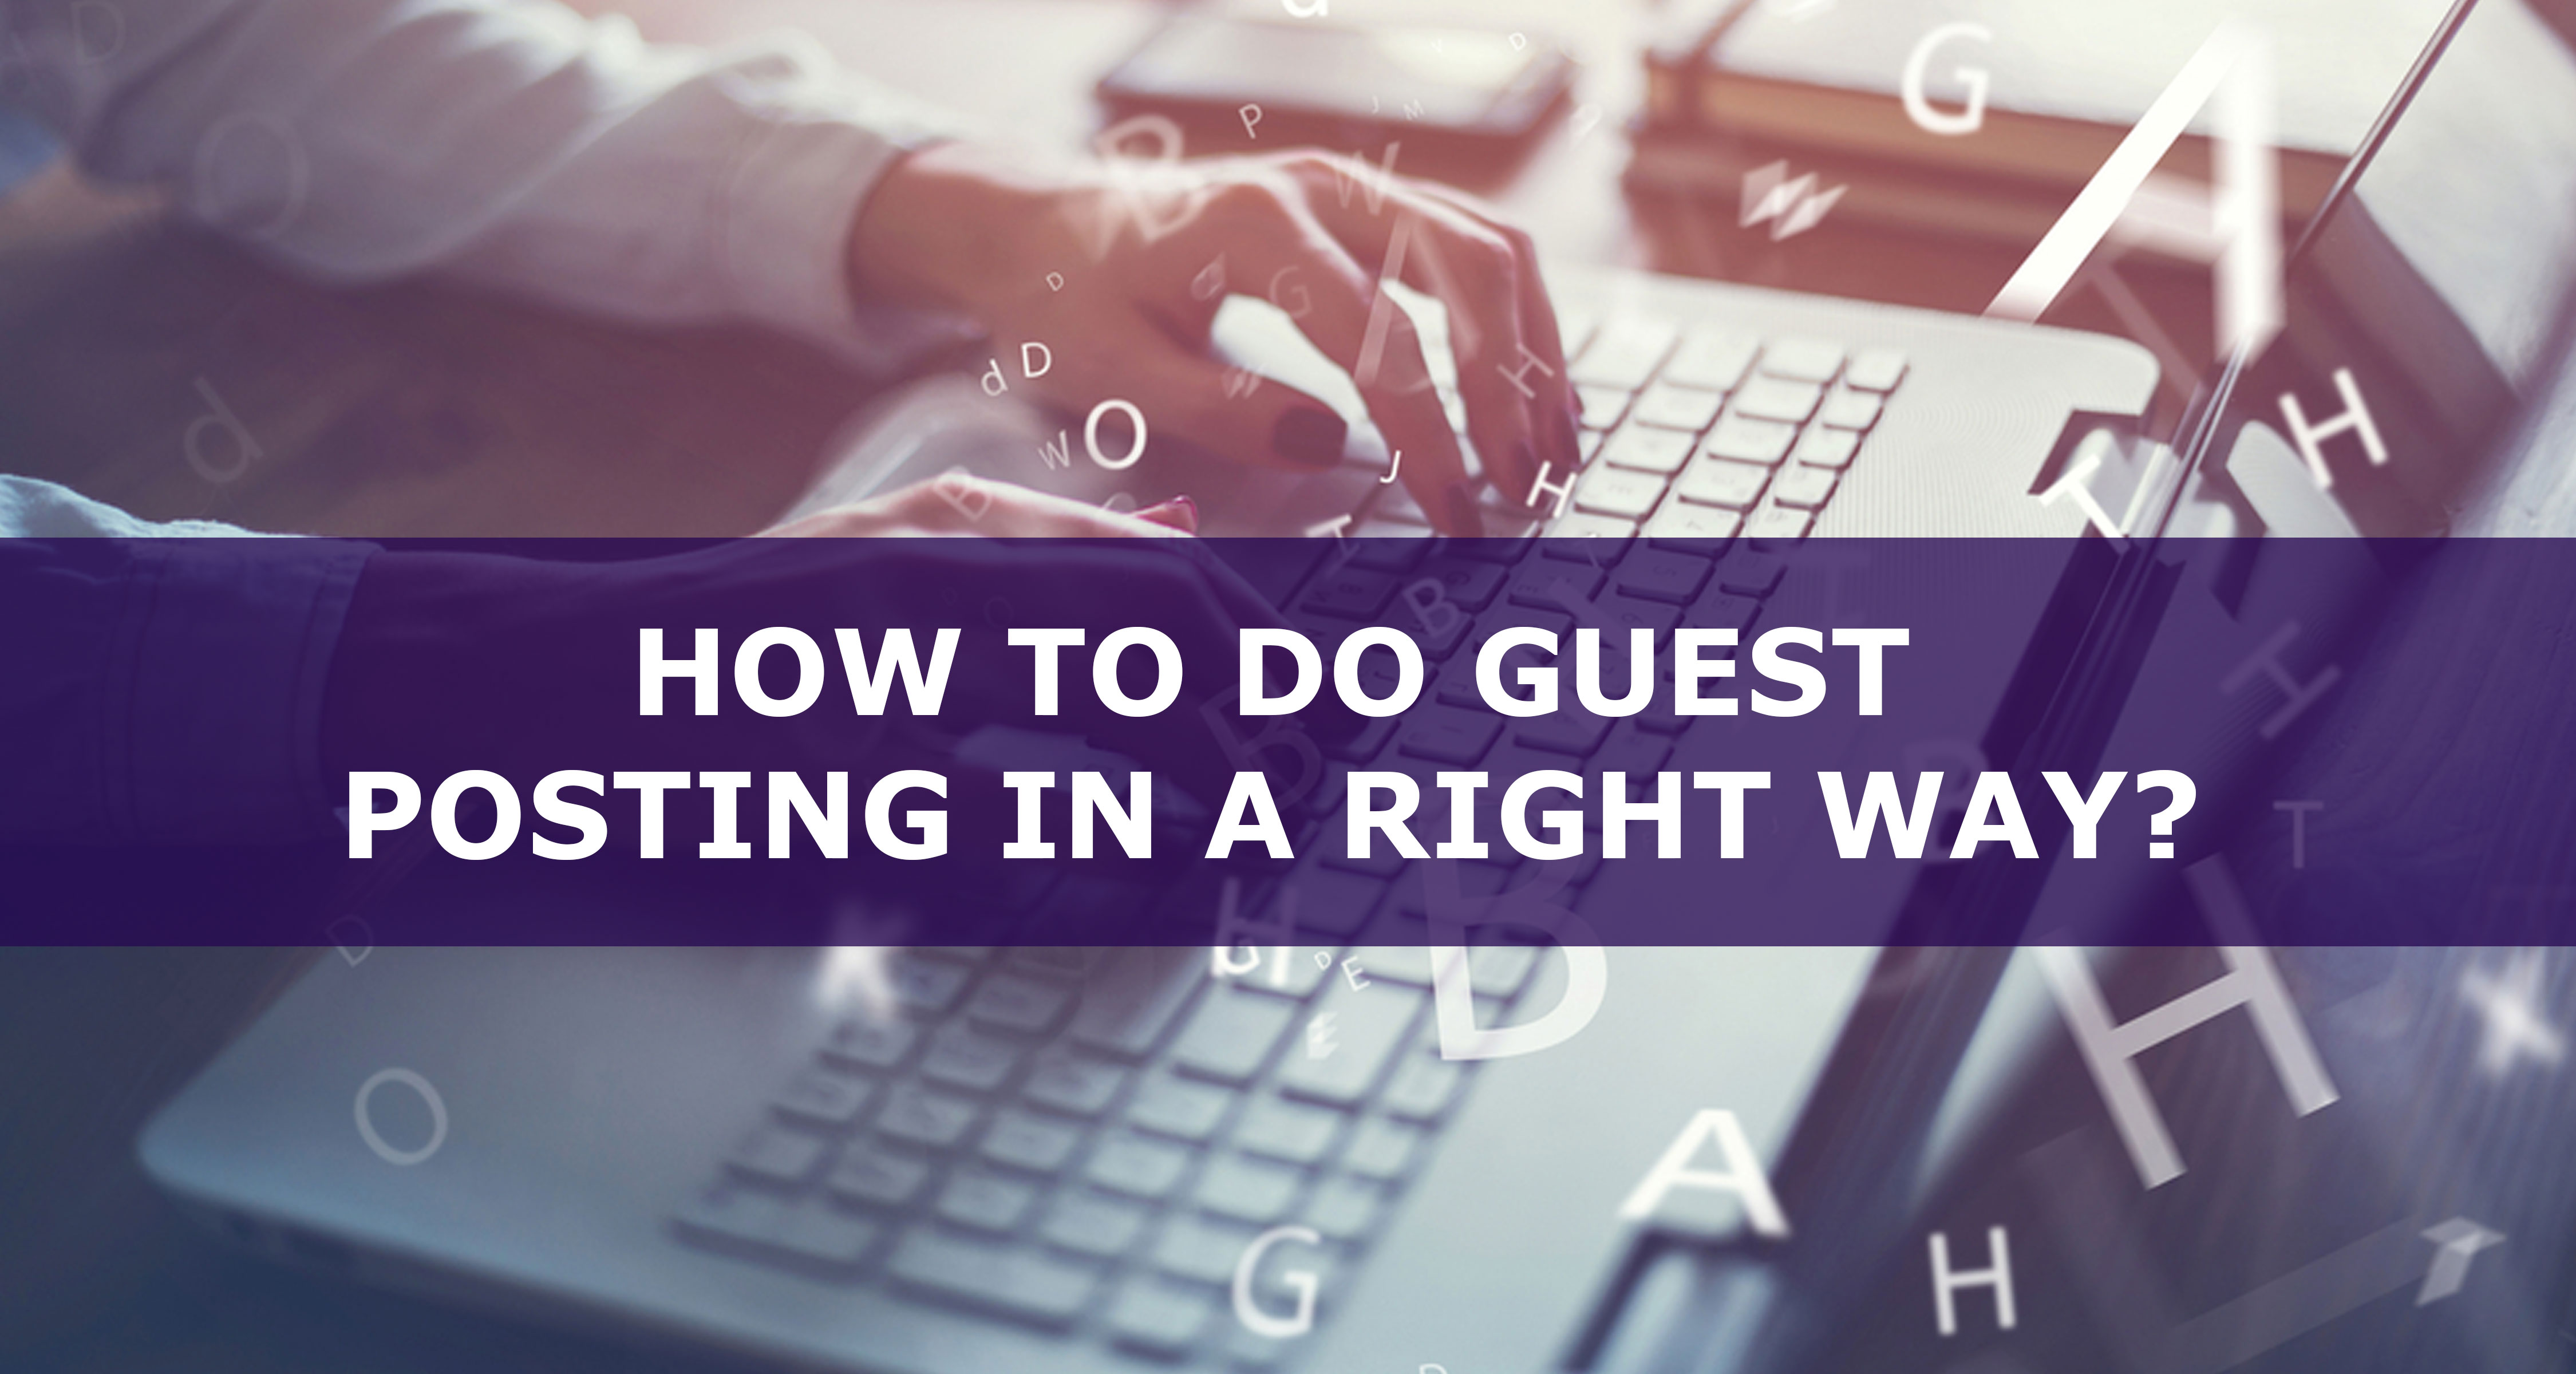 How To Do Guest Posting In A Right Way? Best Methods That Are Proven!